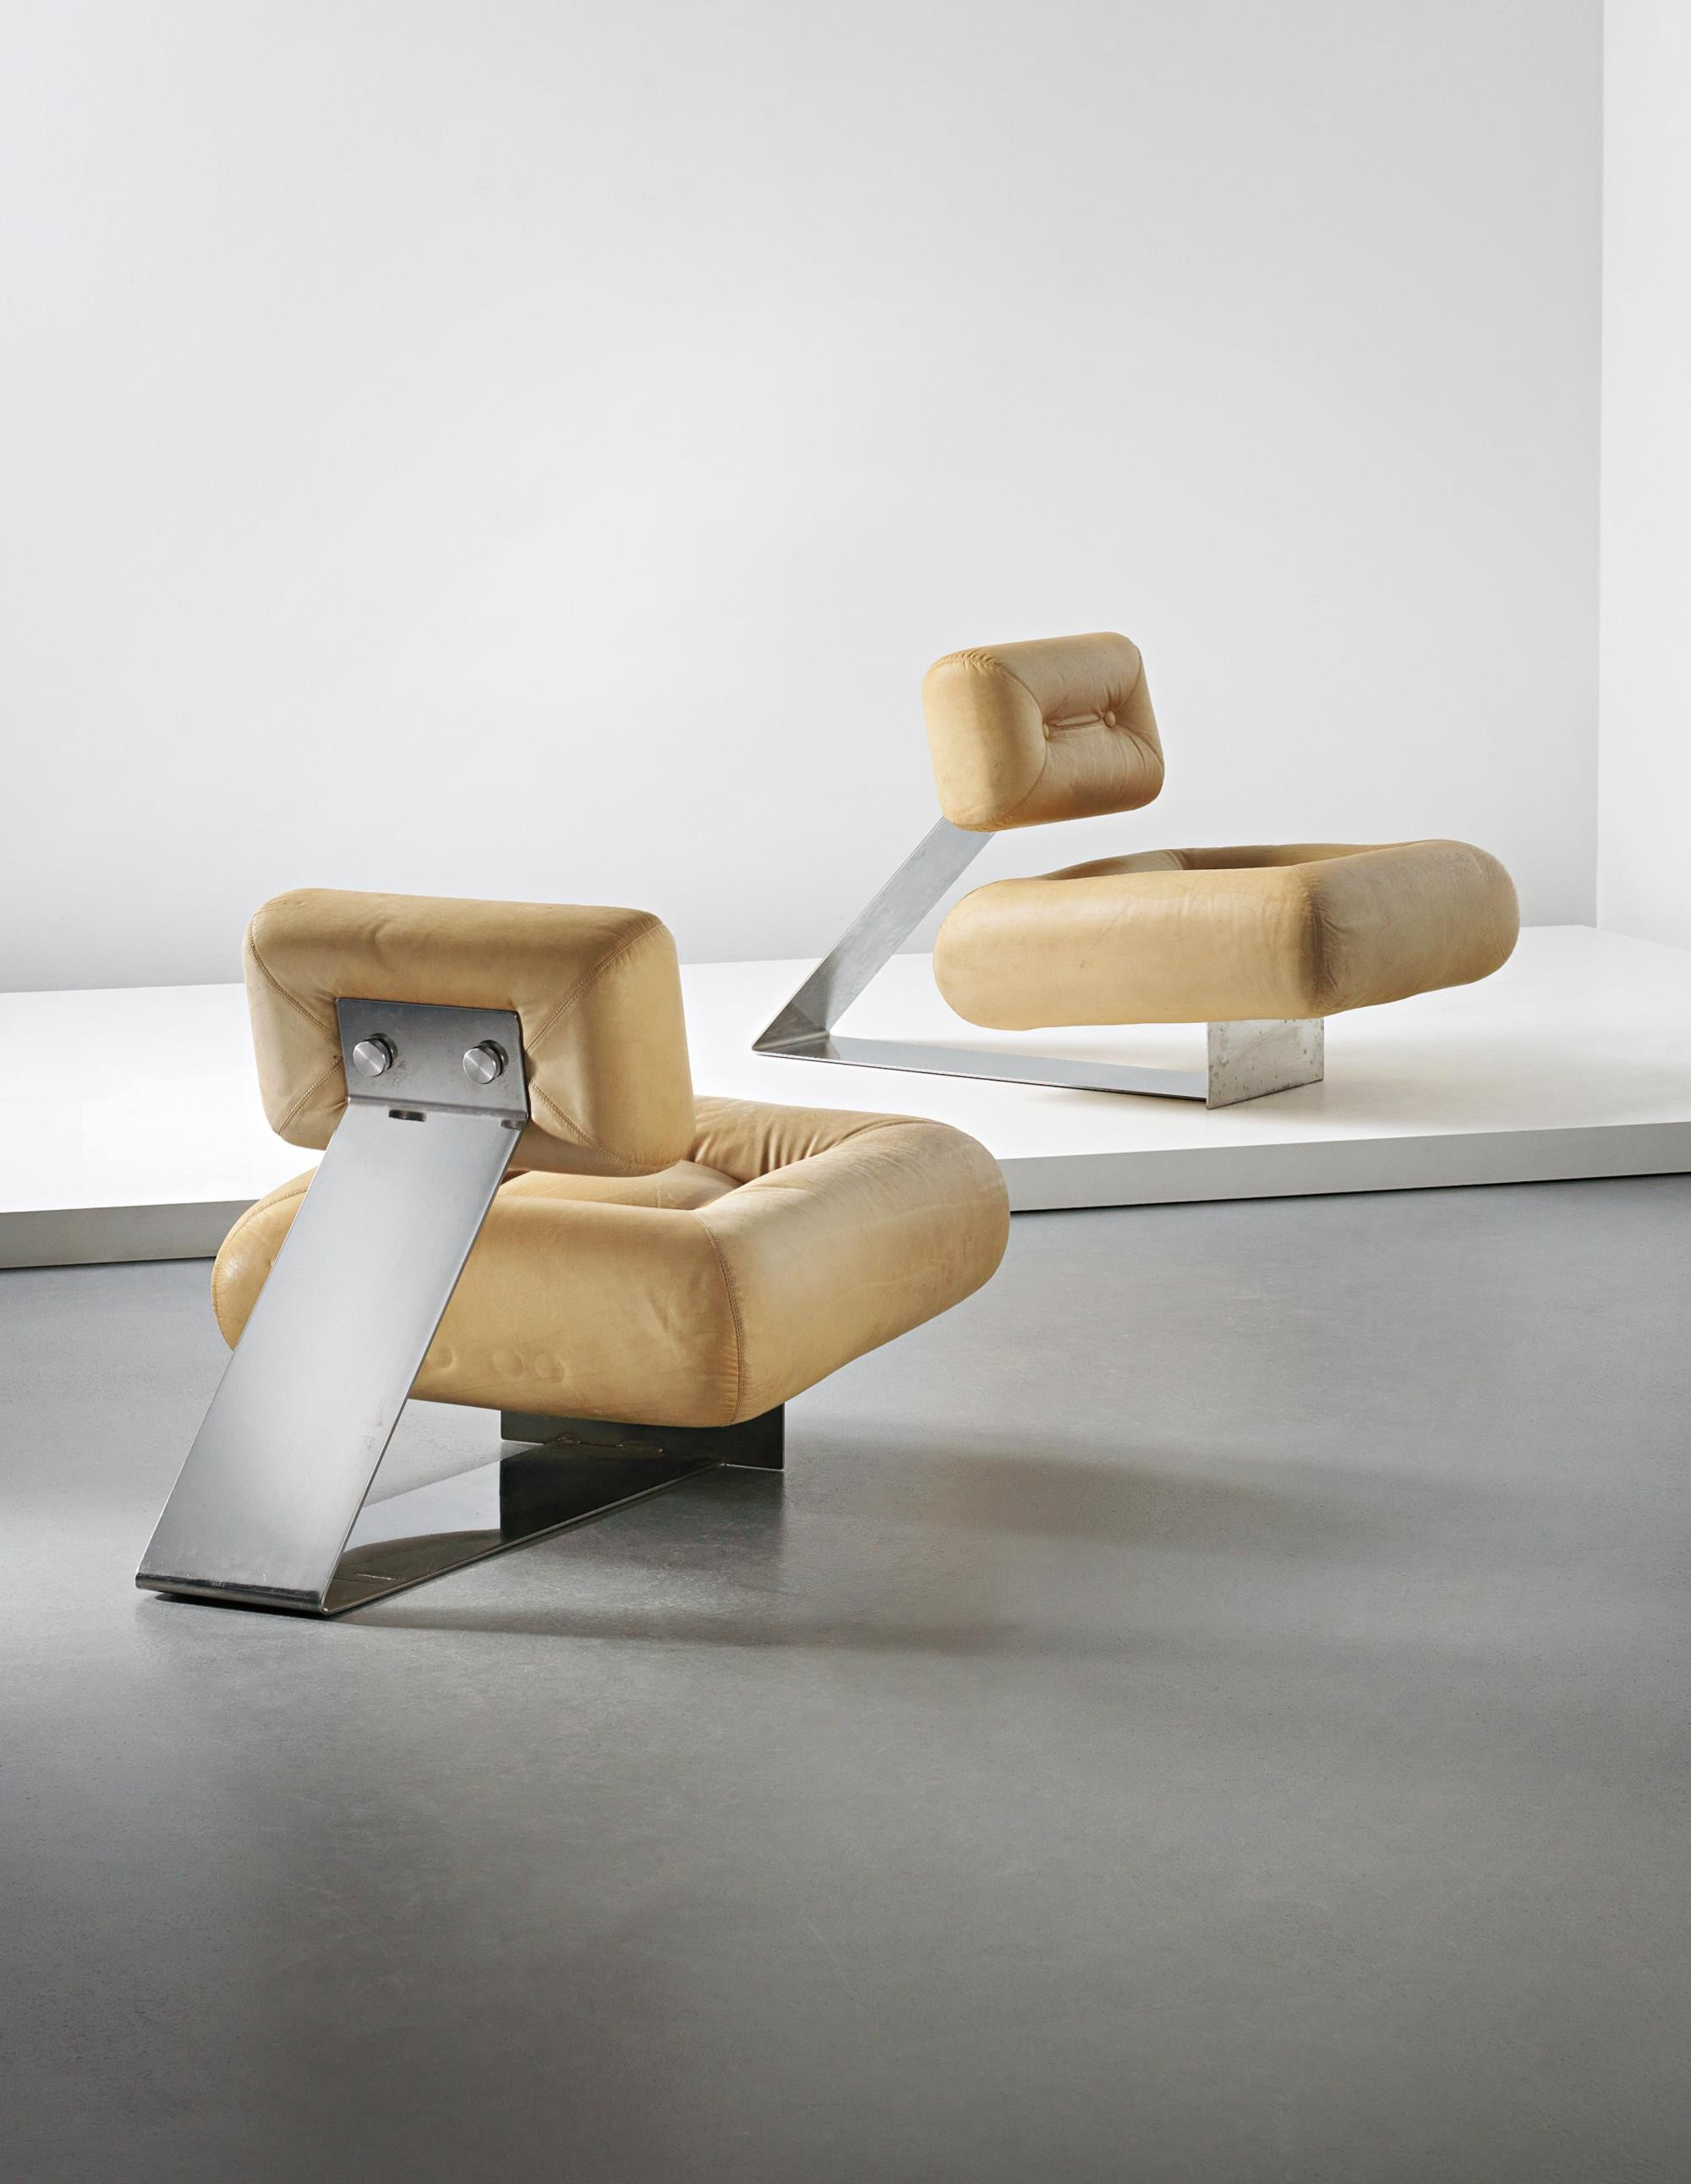 Gallery of Sold 100 Design Relics from Niemeyer Le